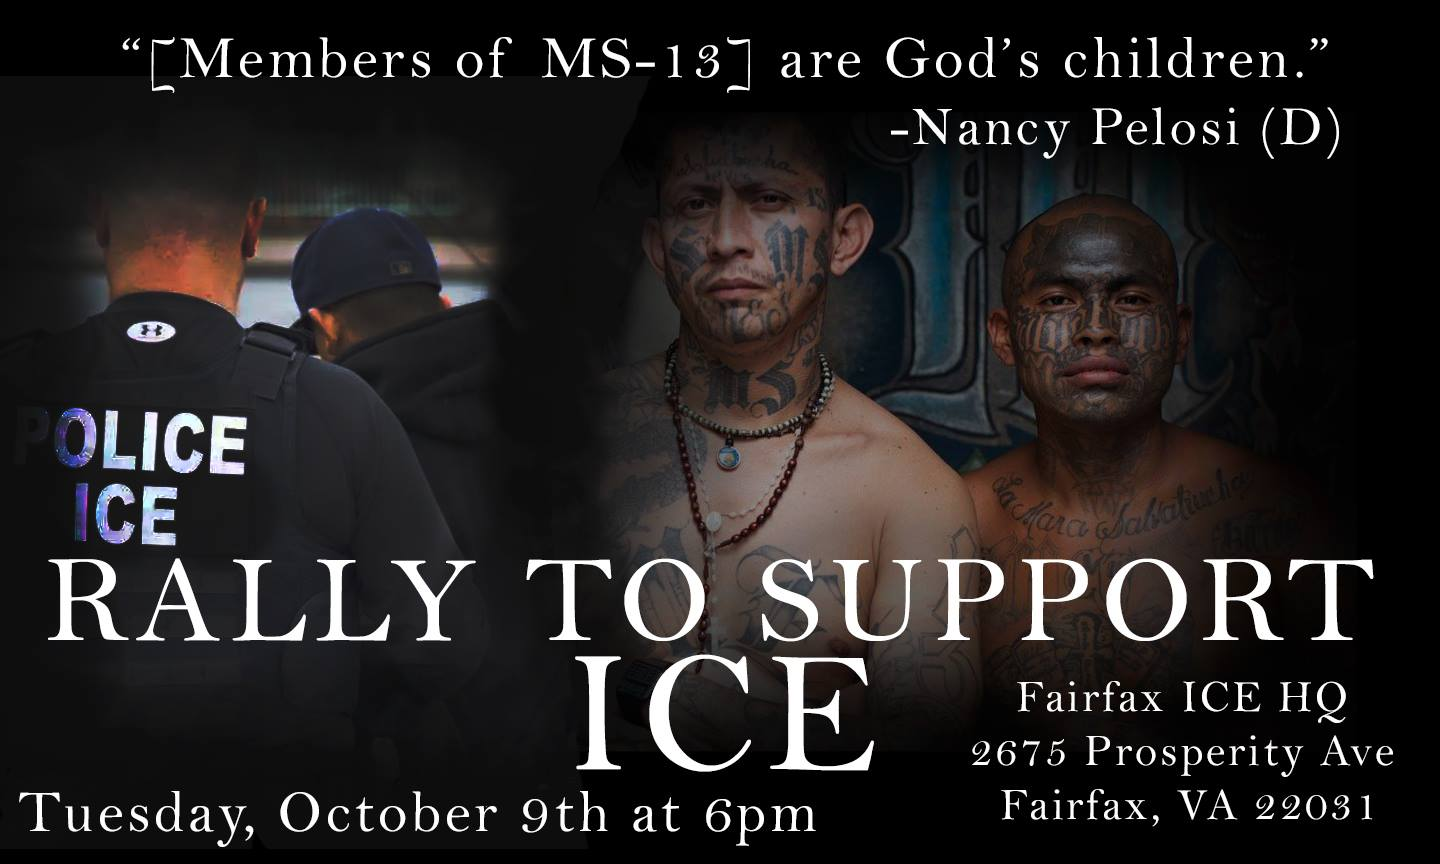 UPDATE: Rally to Support ICE October 9, 6PM Fairfax ICE HQ